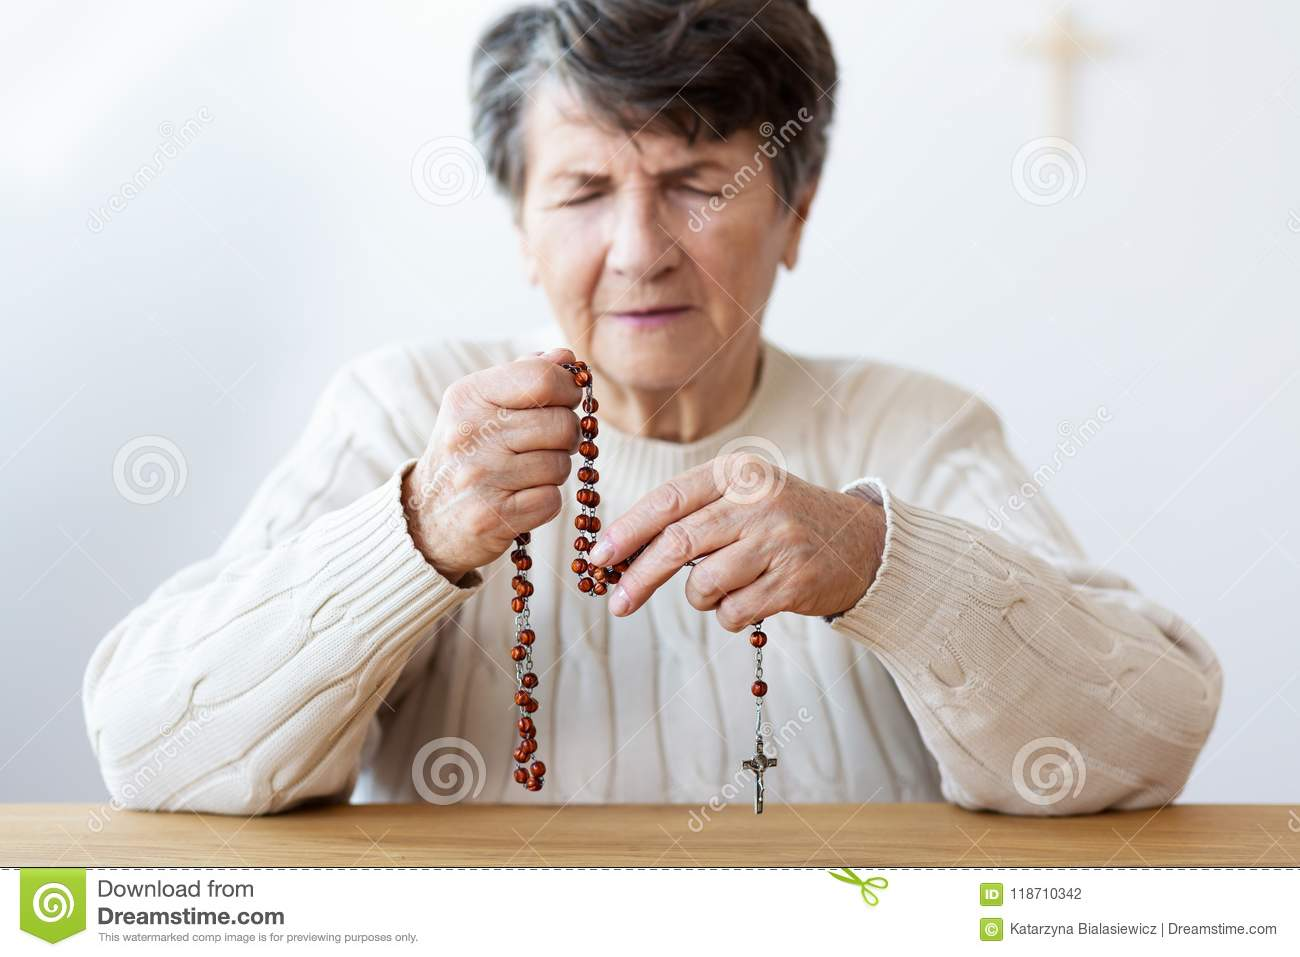 Close-up on the hands of a focused grandmother praying with a re